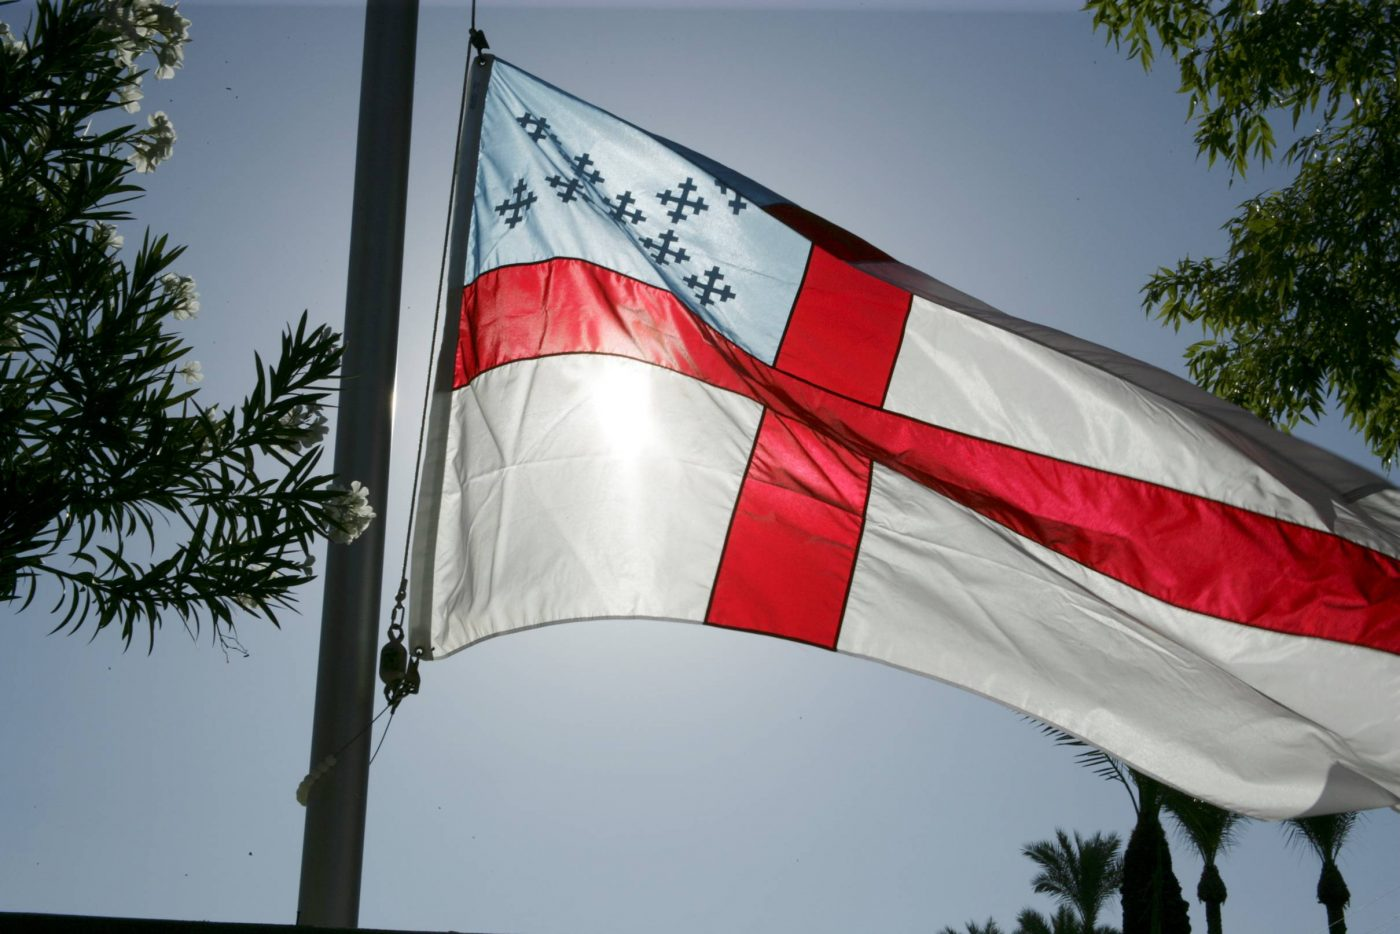 episcopal church flag symbols youth fitsnews anglican rules breakaway sc flags james st court episcopalian hyc conference september icons religion